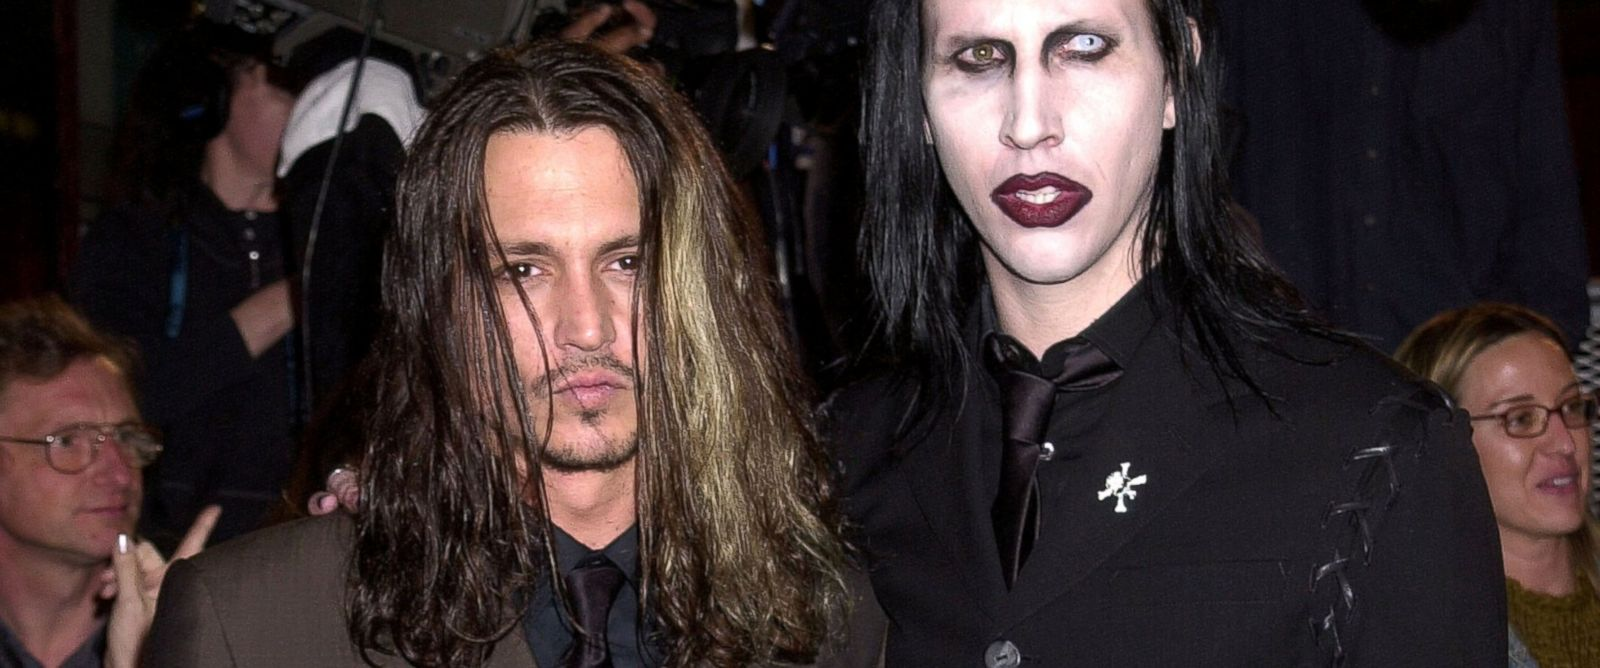 Image result for marilyn manson johnny depp